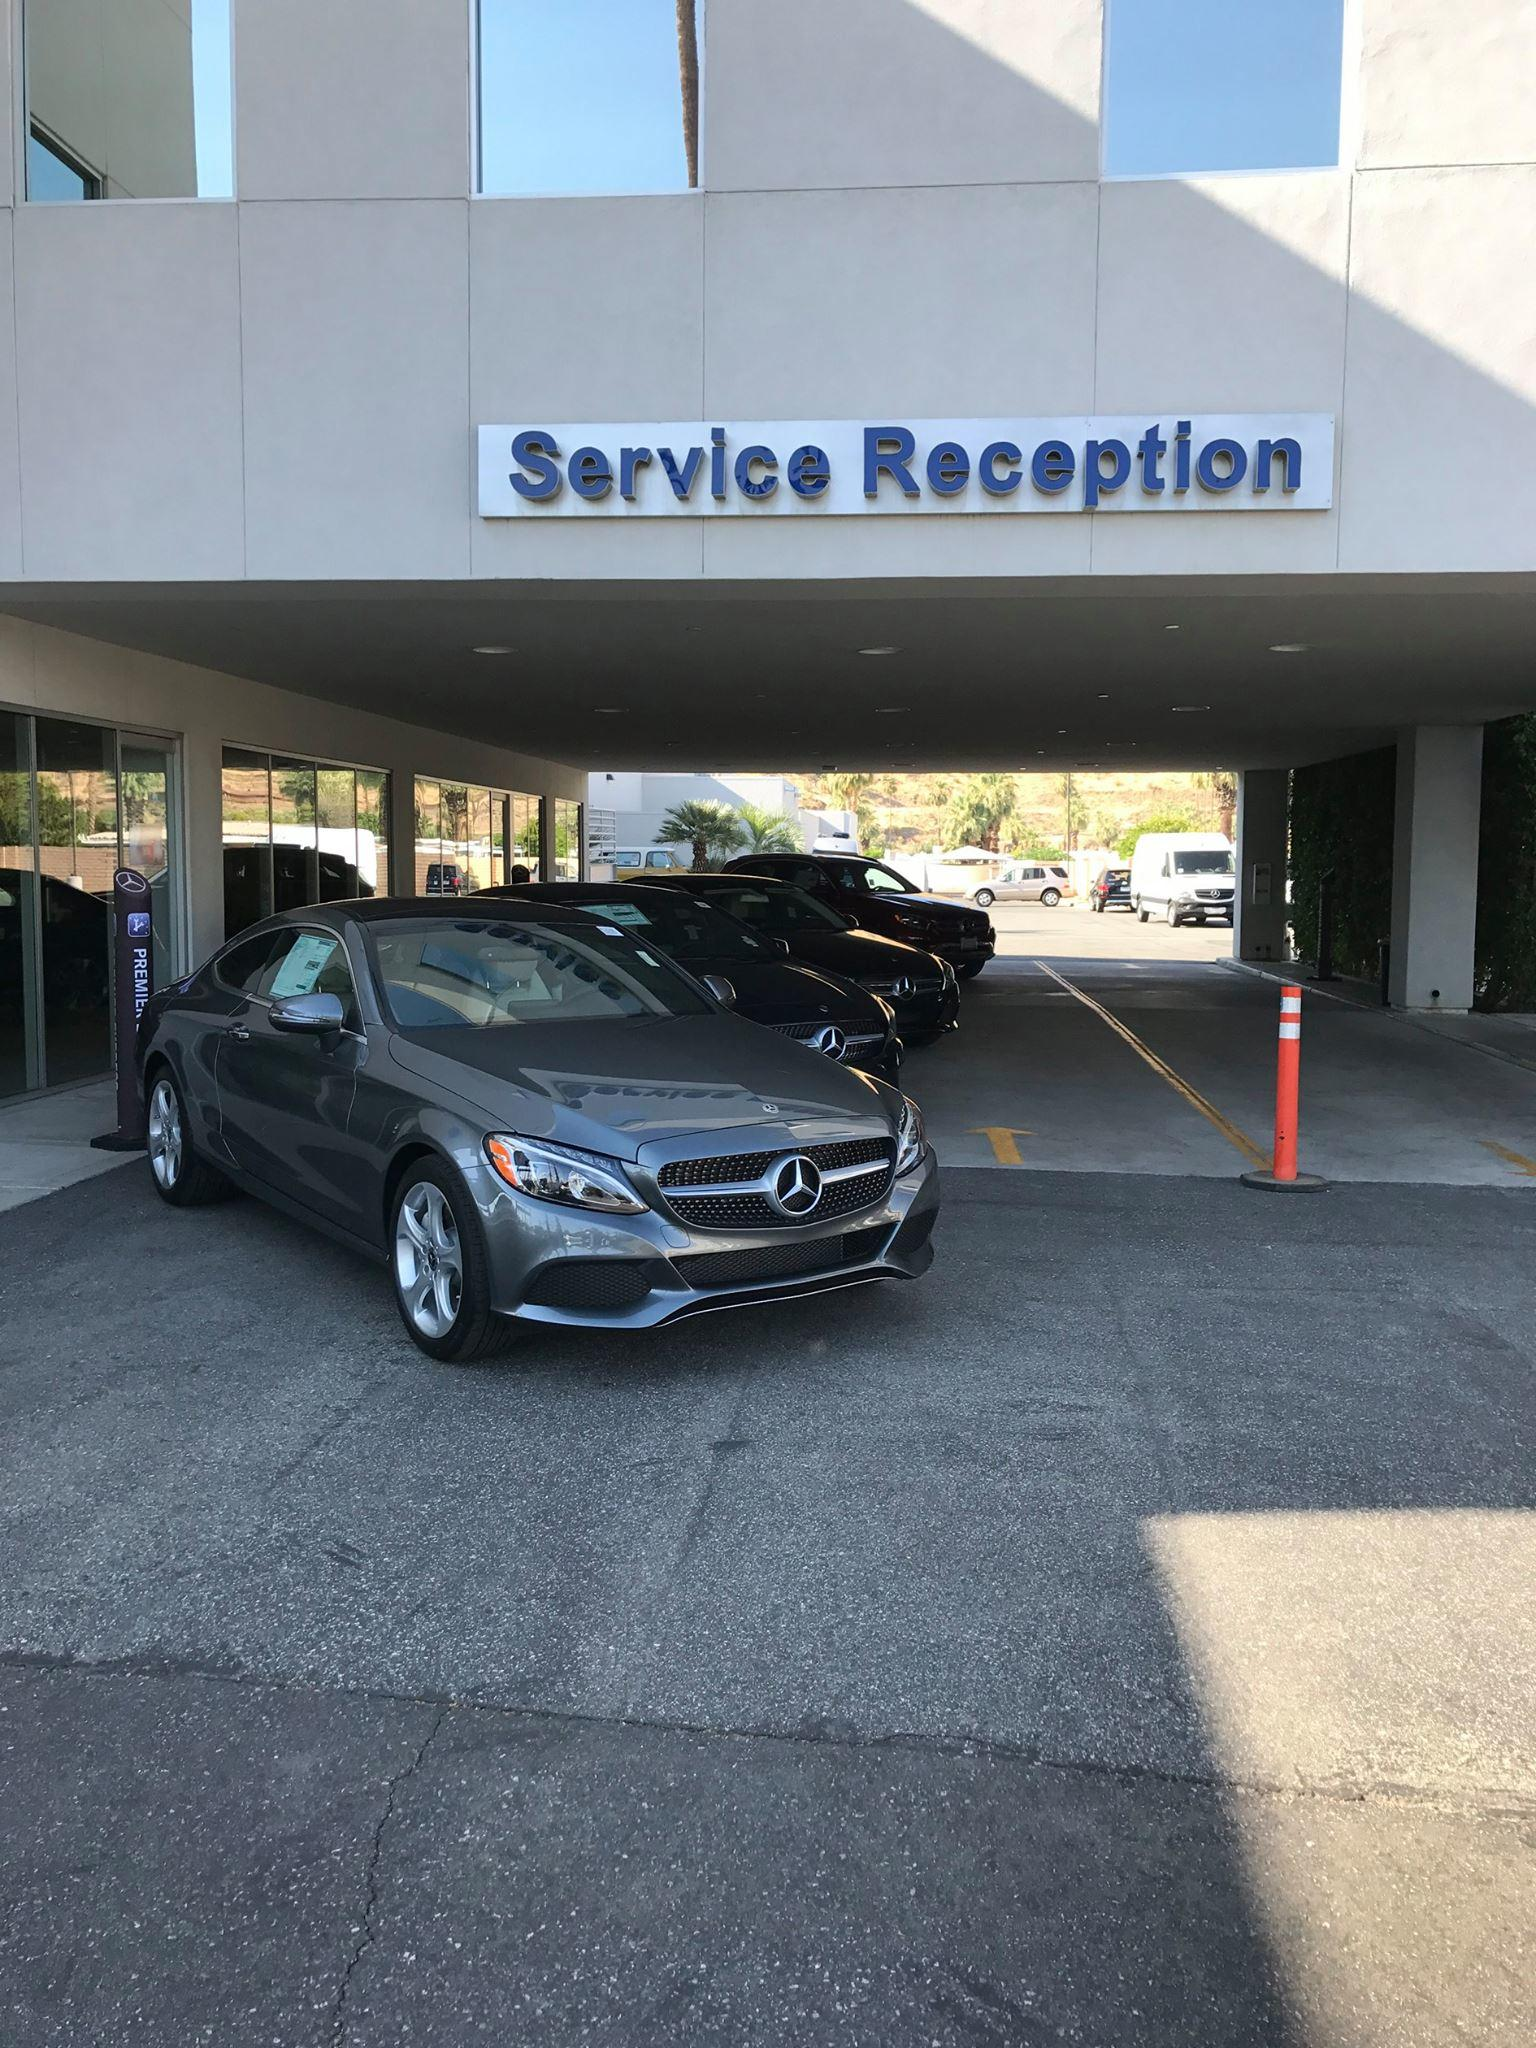 Mercedes-Benz of Palm Springs image 6